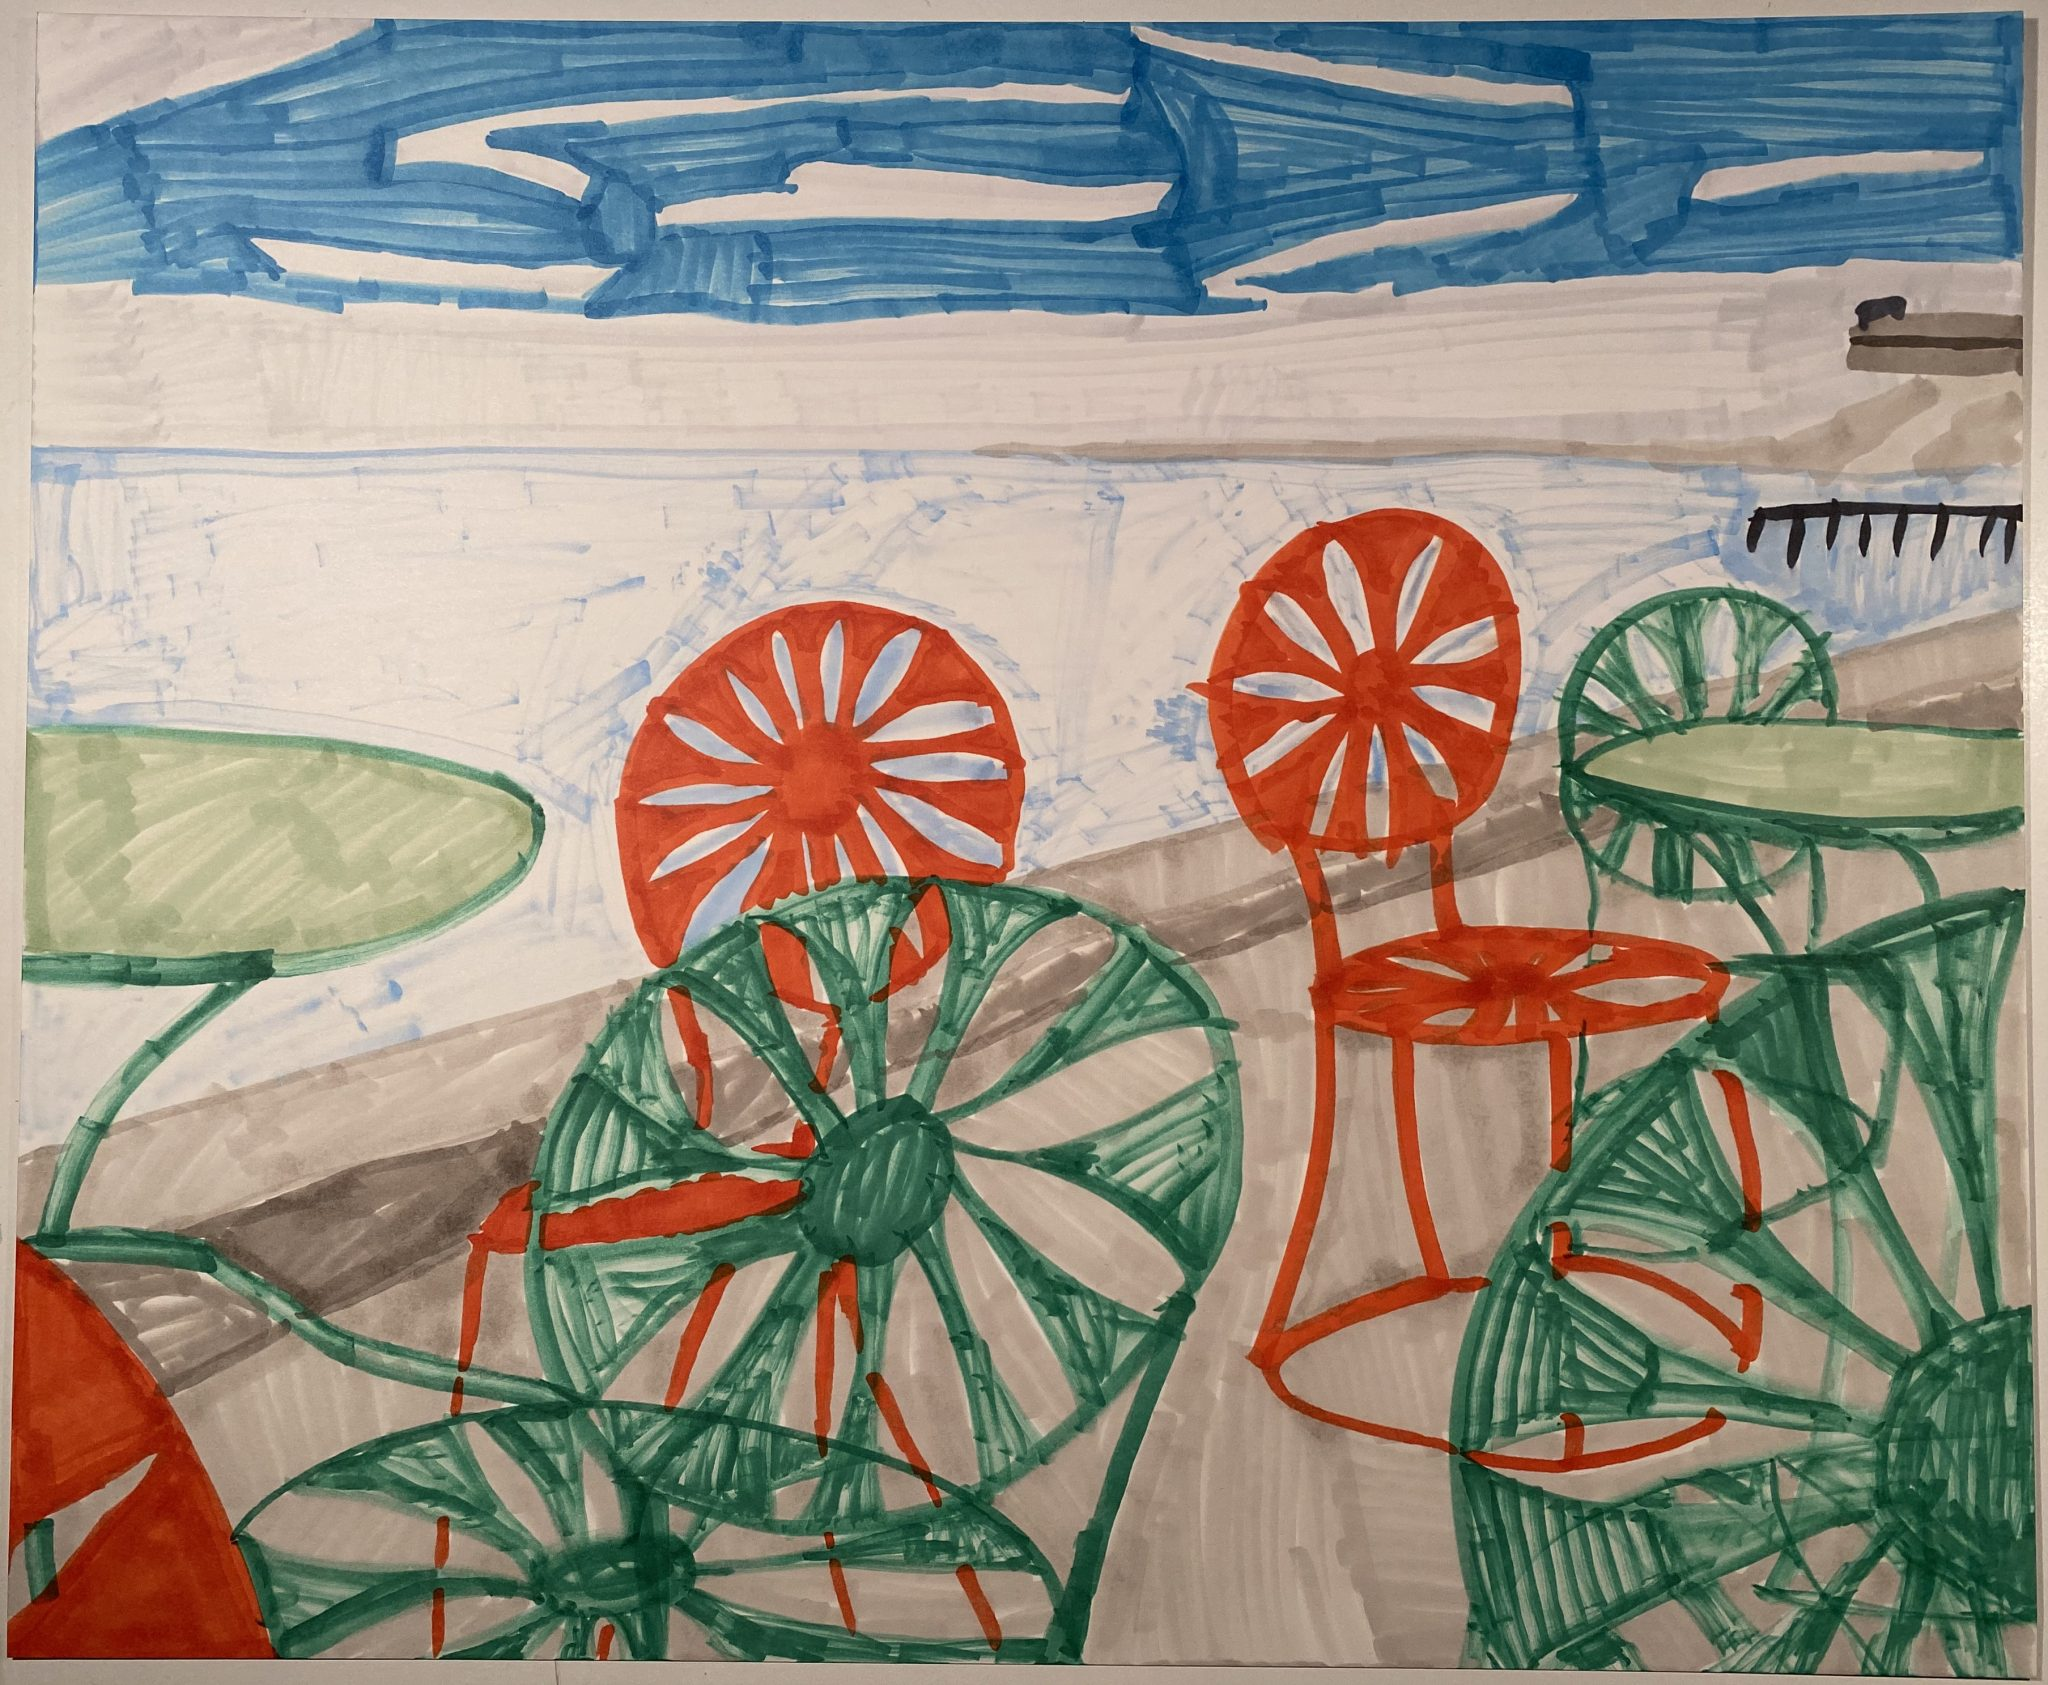 Wisconsin Union, a drawing by Devin Wildes of empty café chairs, vacated by the coronavirus pandemic.